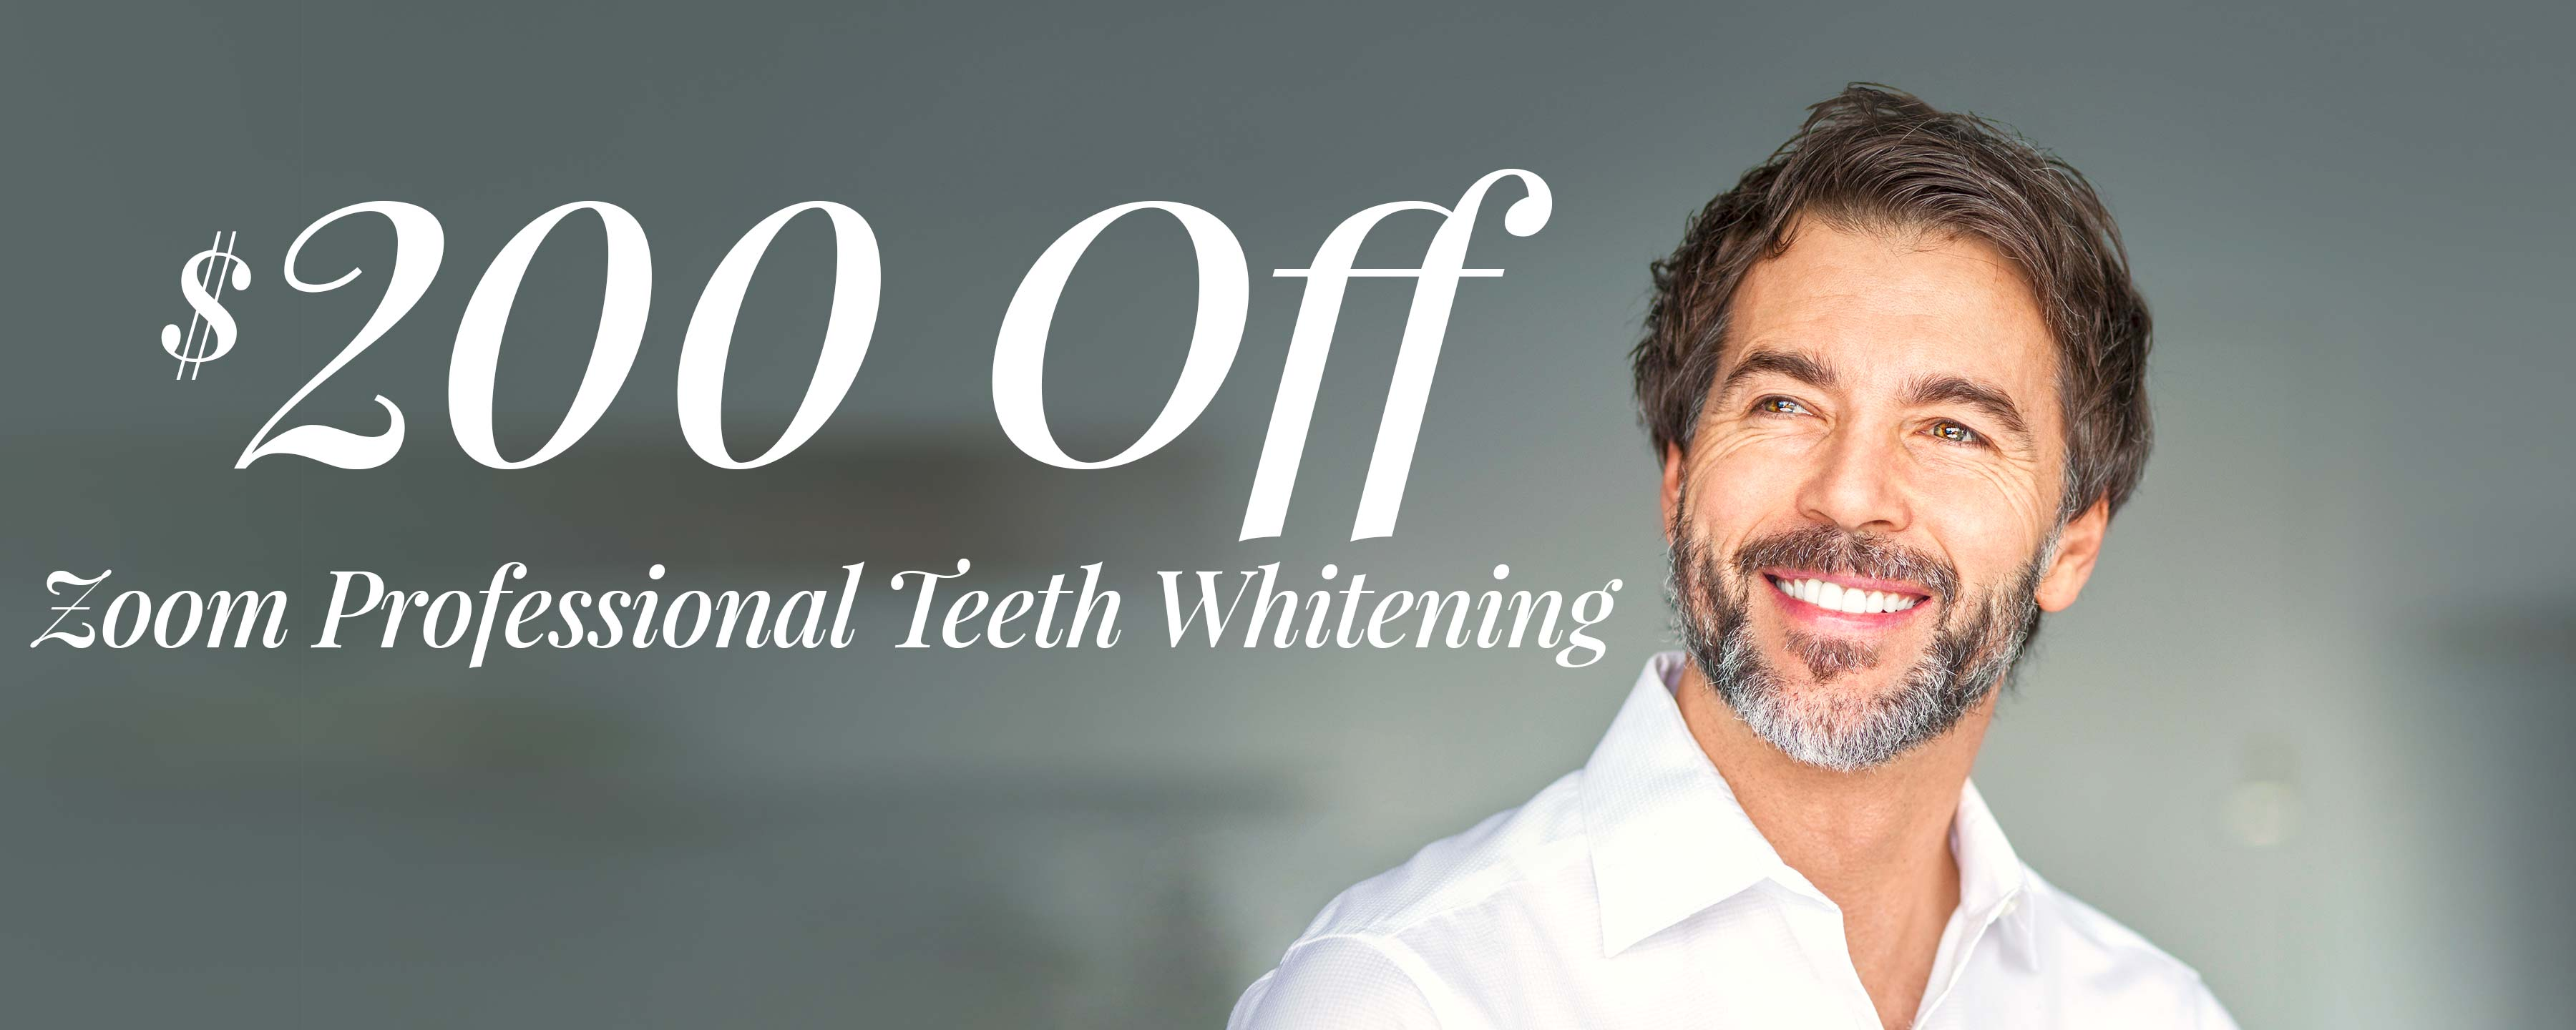 $200 Off Zoom! Professional Teeth Whitening*